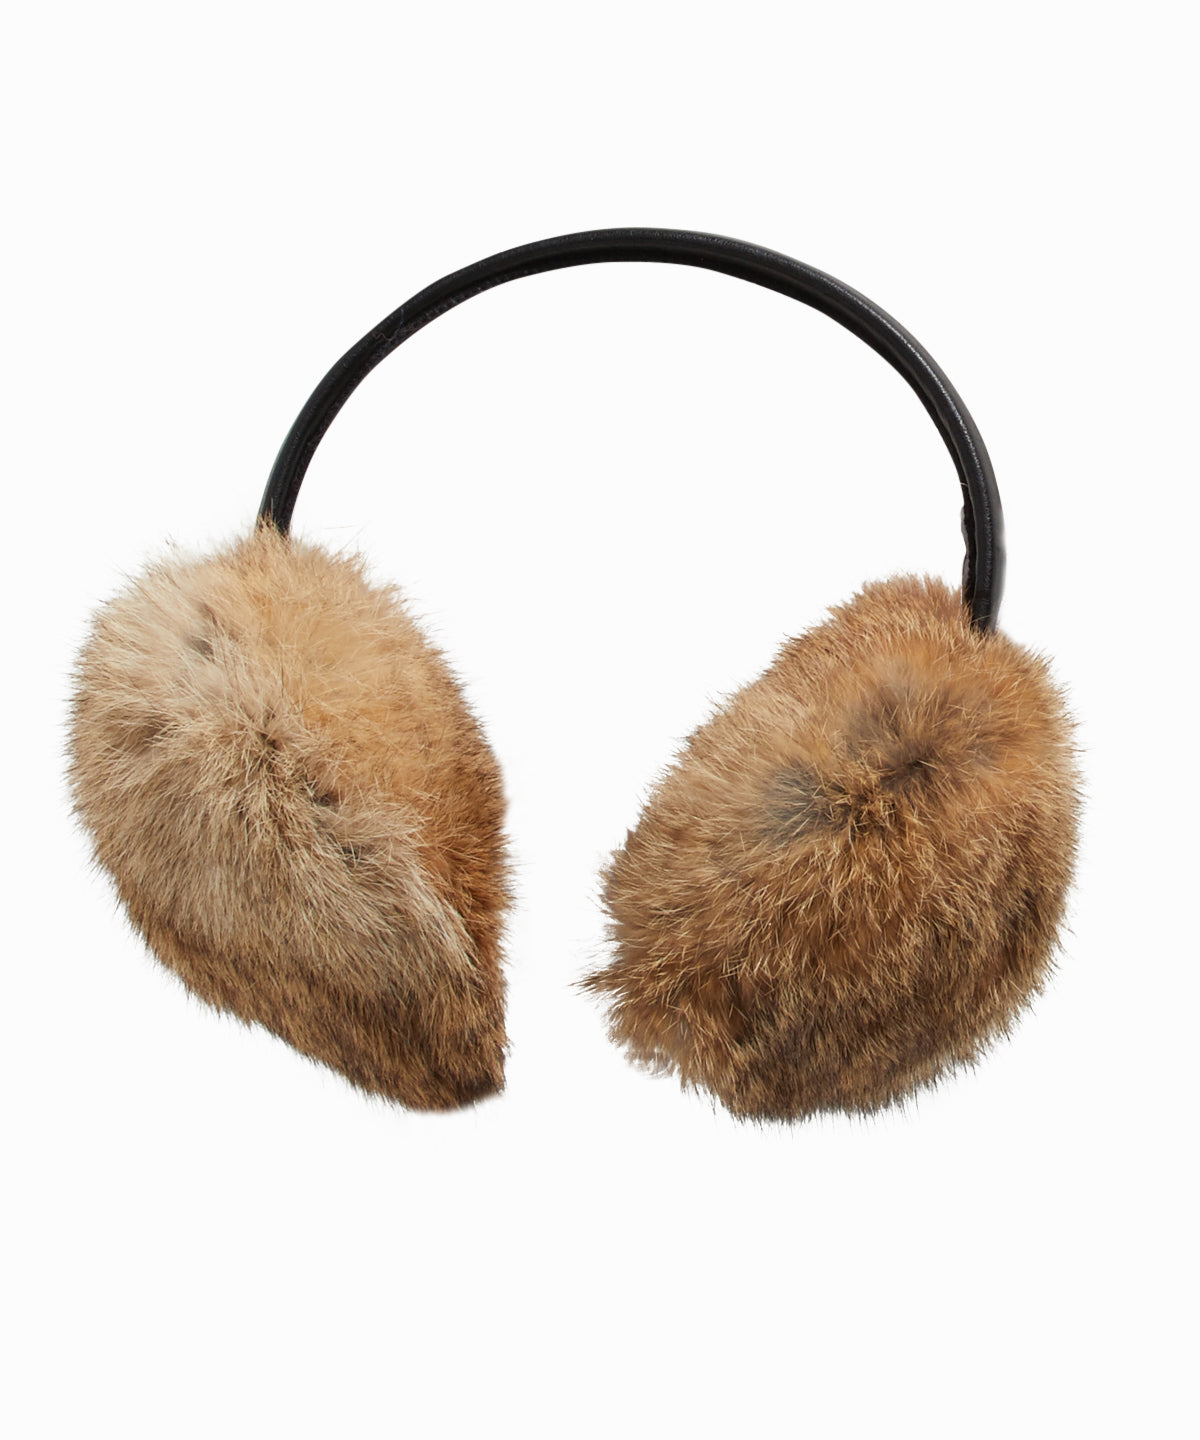 Natural Fur Earmuffs